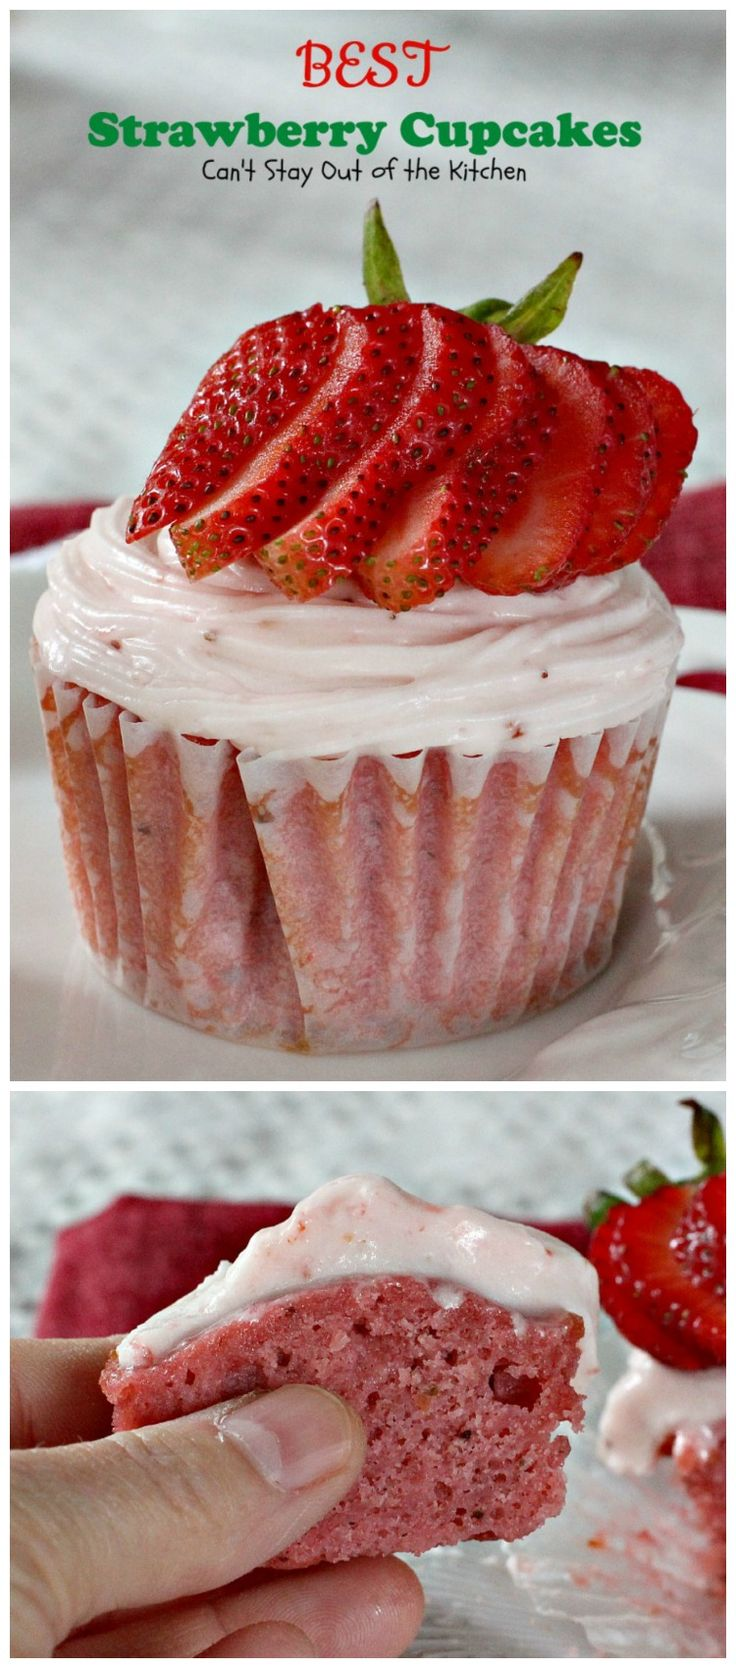 "Okay, when I say ""BEST"" I really mean ""BEST!"" BEST Strawberry Cupcakes are so scrumptious you will be drooling after one bite."